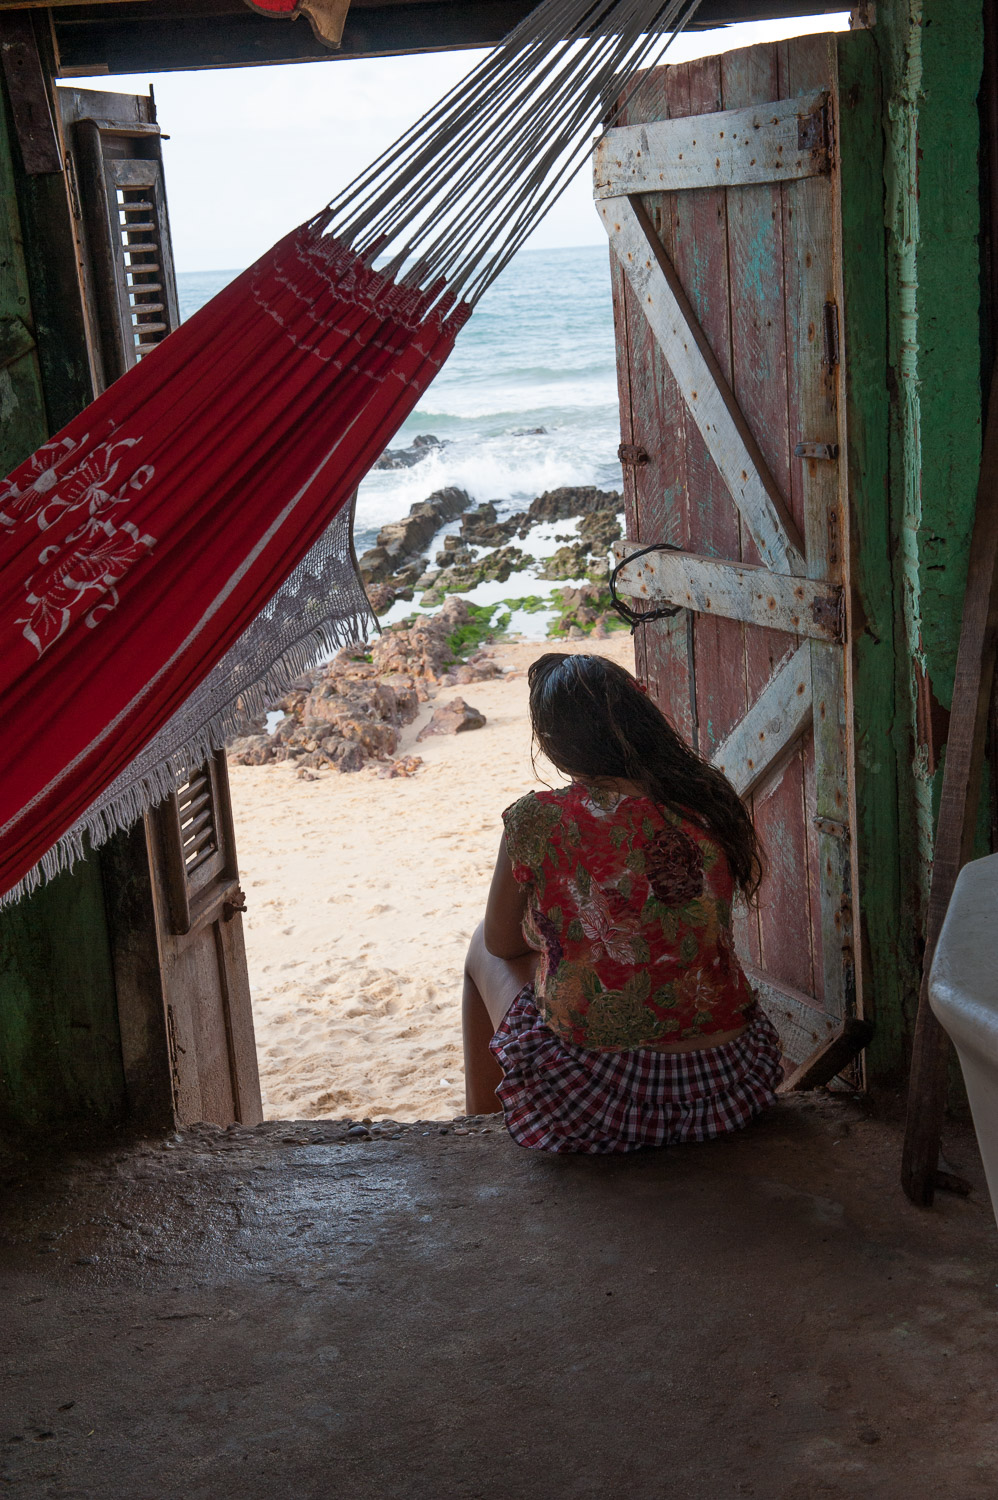 A favela (slum) resident of Fortaleza looks out at the Atlantic Ocean.